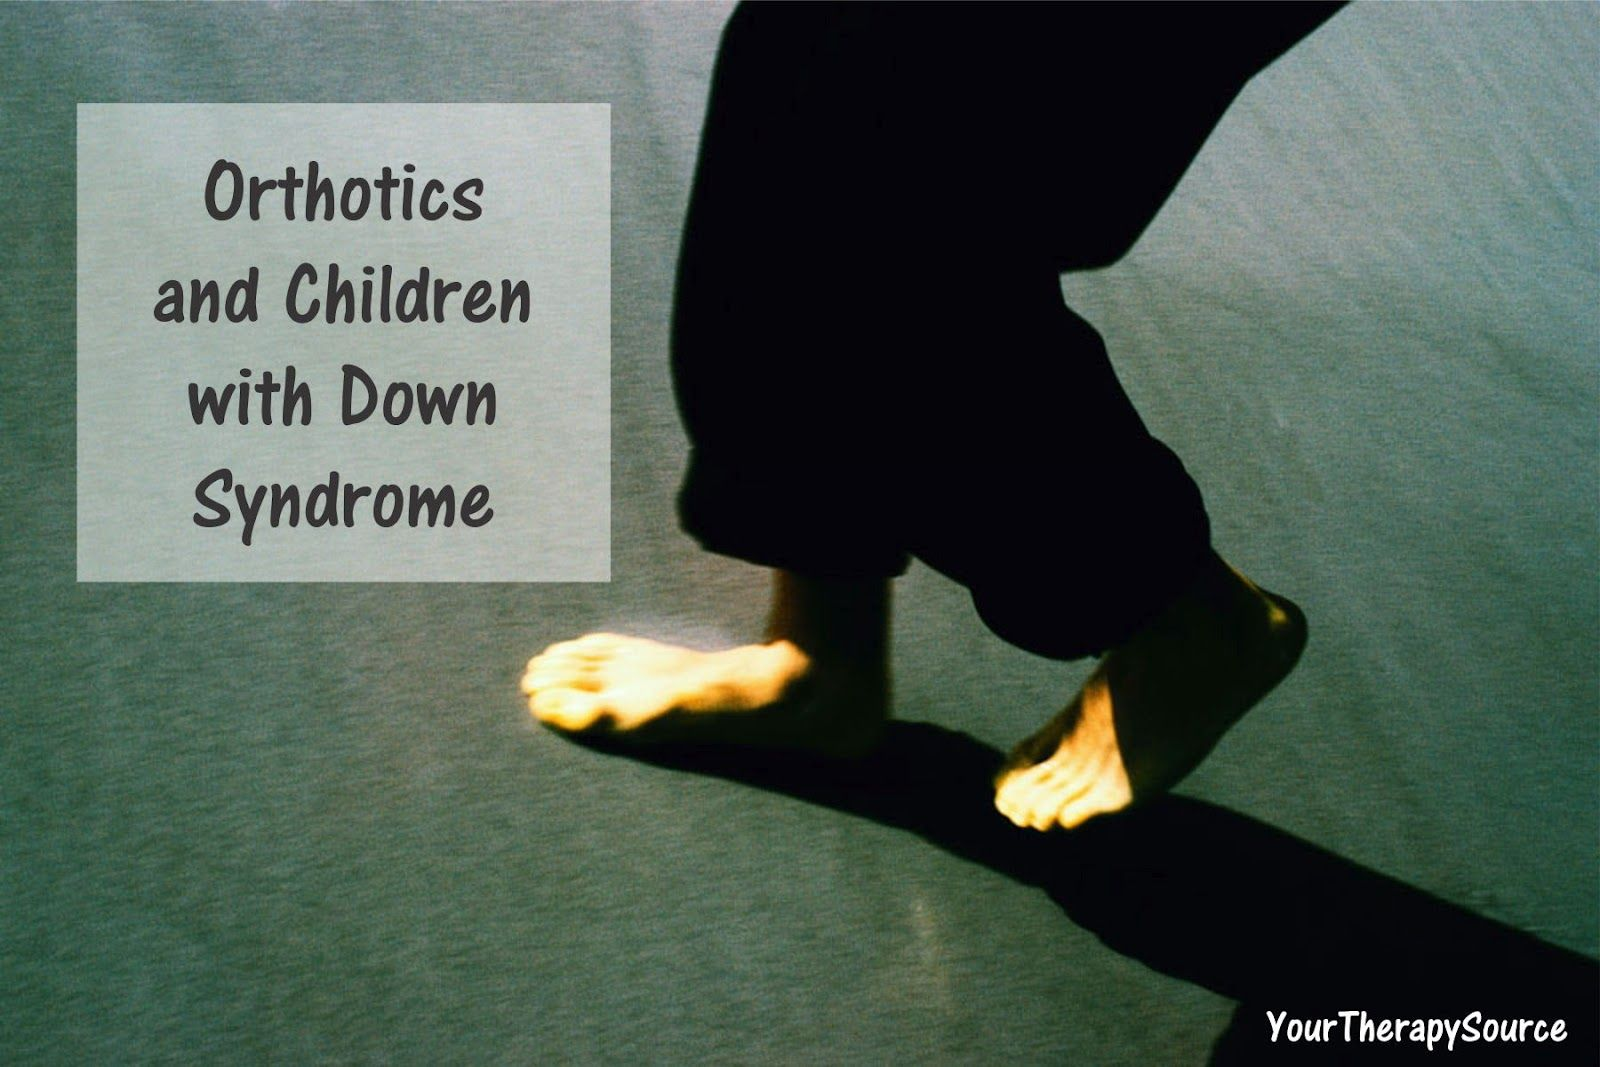 Orthotic Use and Down Syndrome Your Therapy Source - www.YourTherapySource.com: